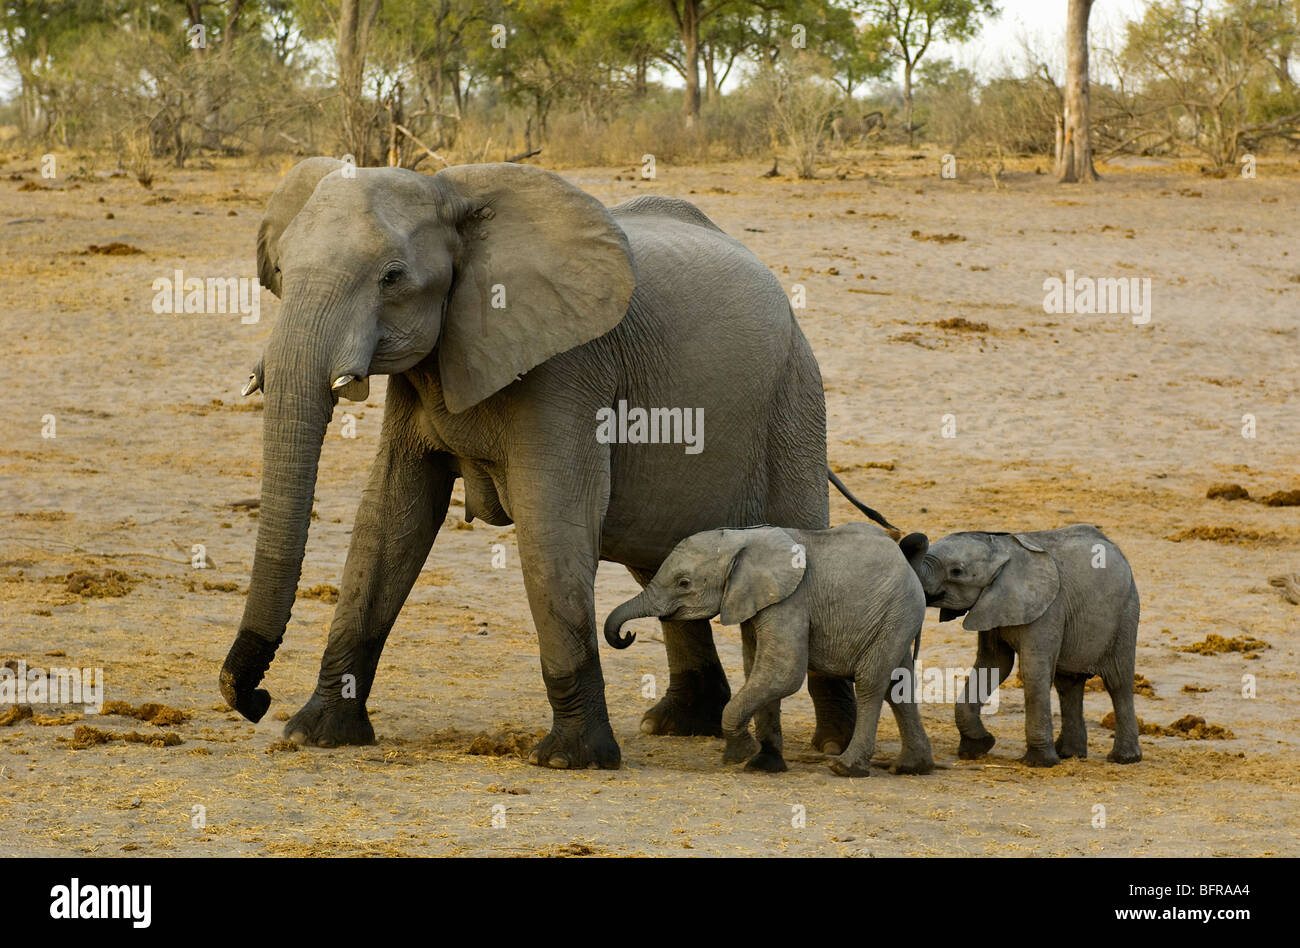 African Elephant mother with twins (Loxodonta africana) - Stock Image